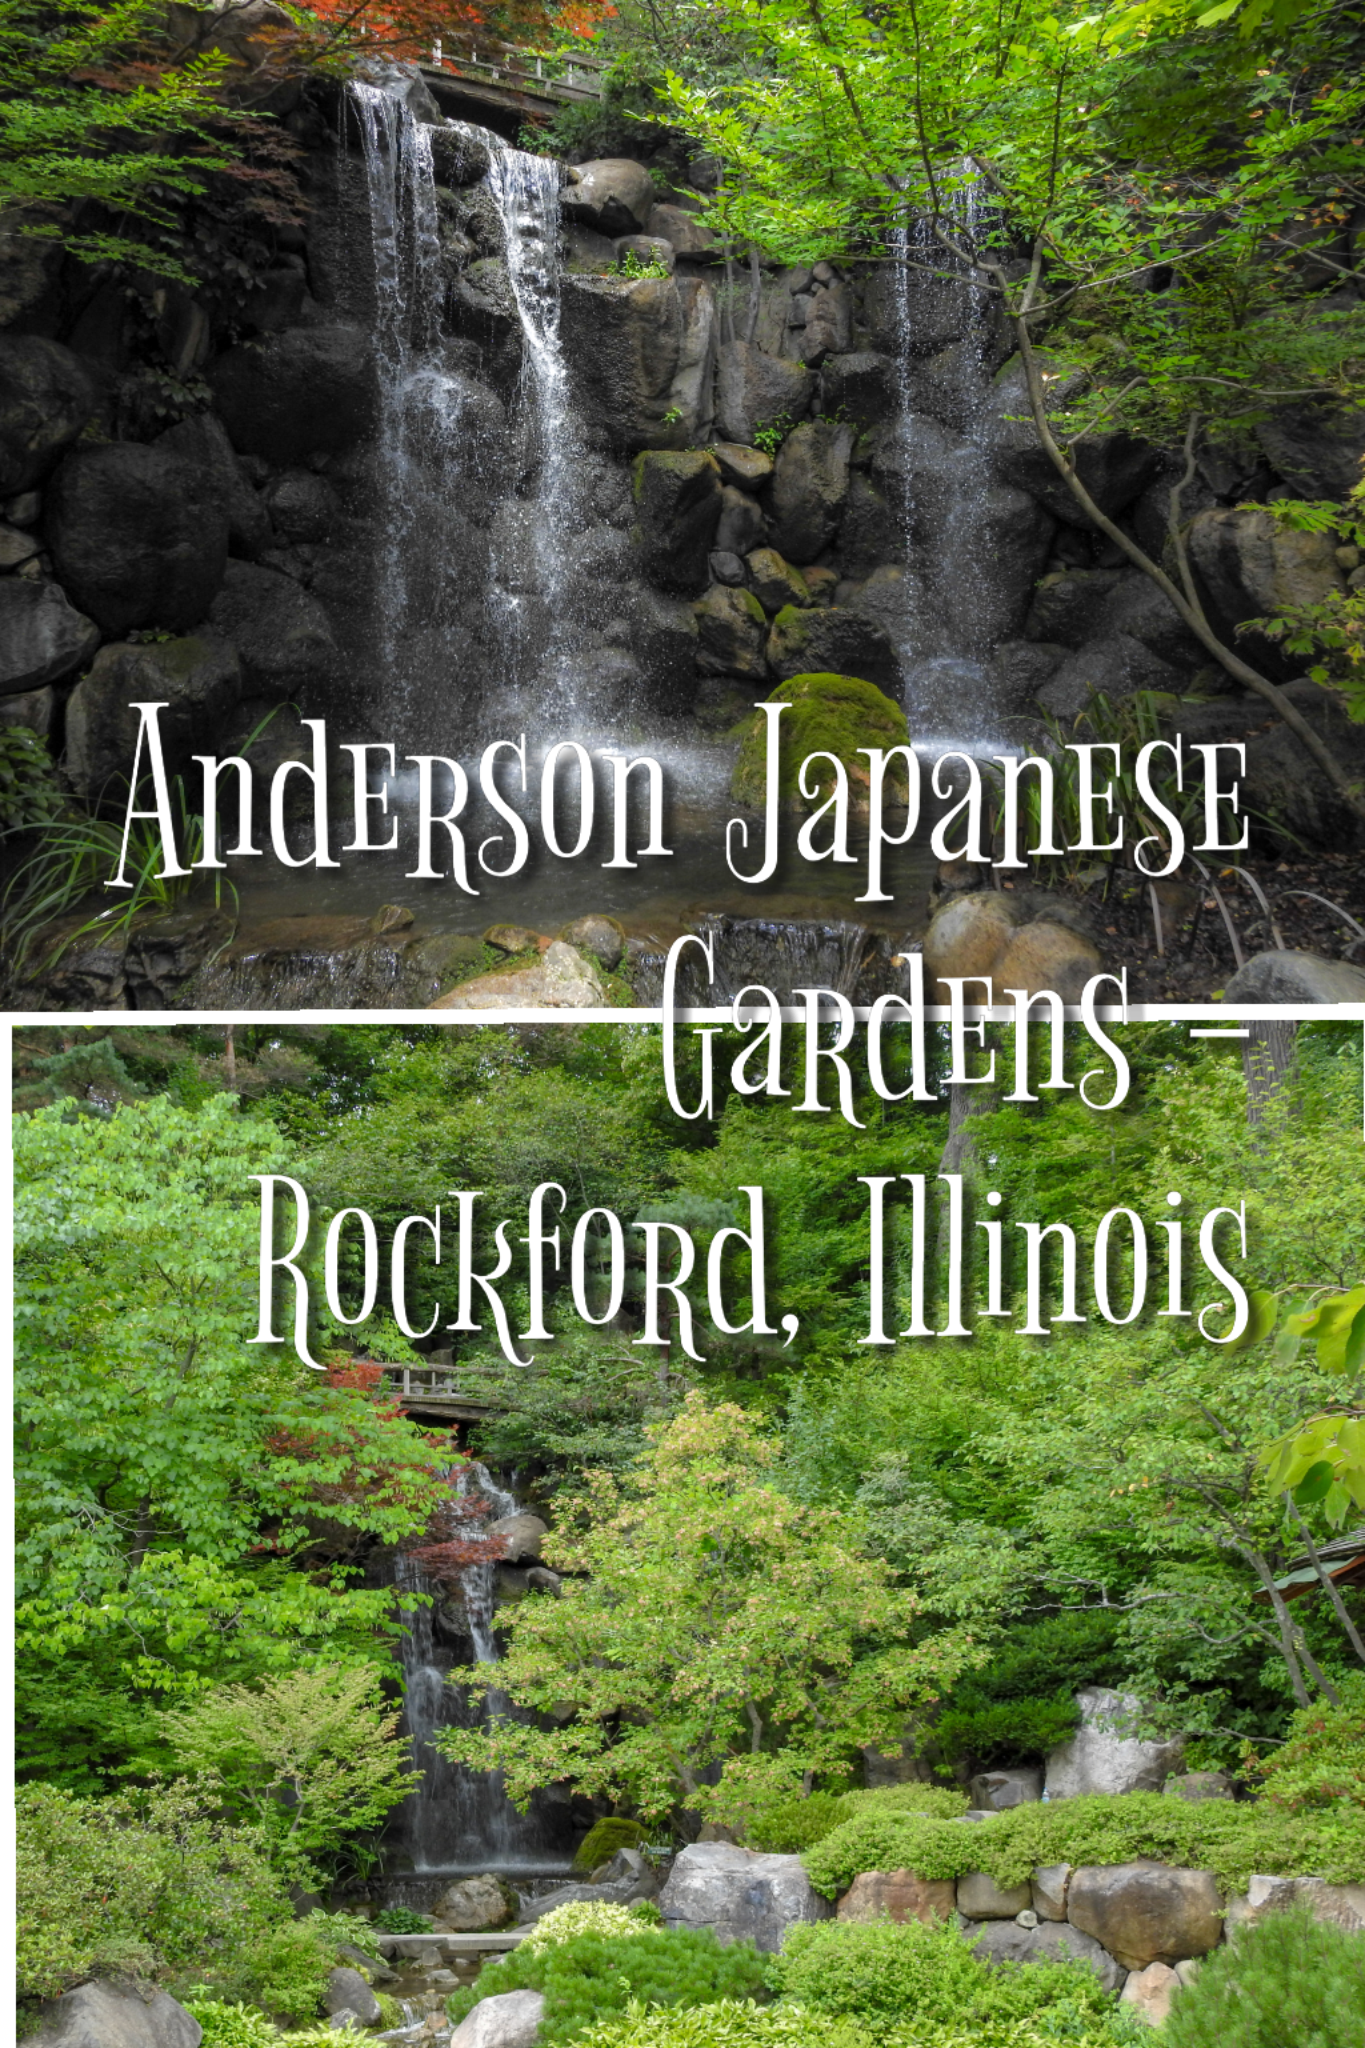 acdd1657d5ff0f2b8874062ff2bf3d1c - Anderson Japanese Gardens Illinois Road Trips